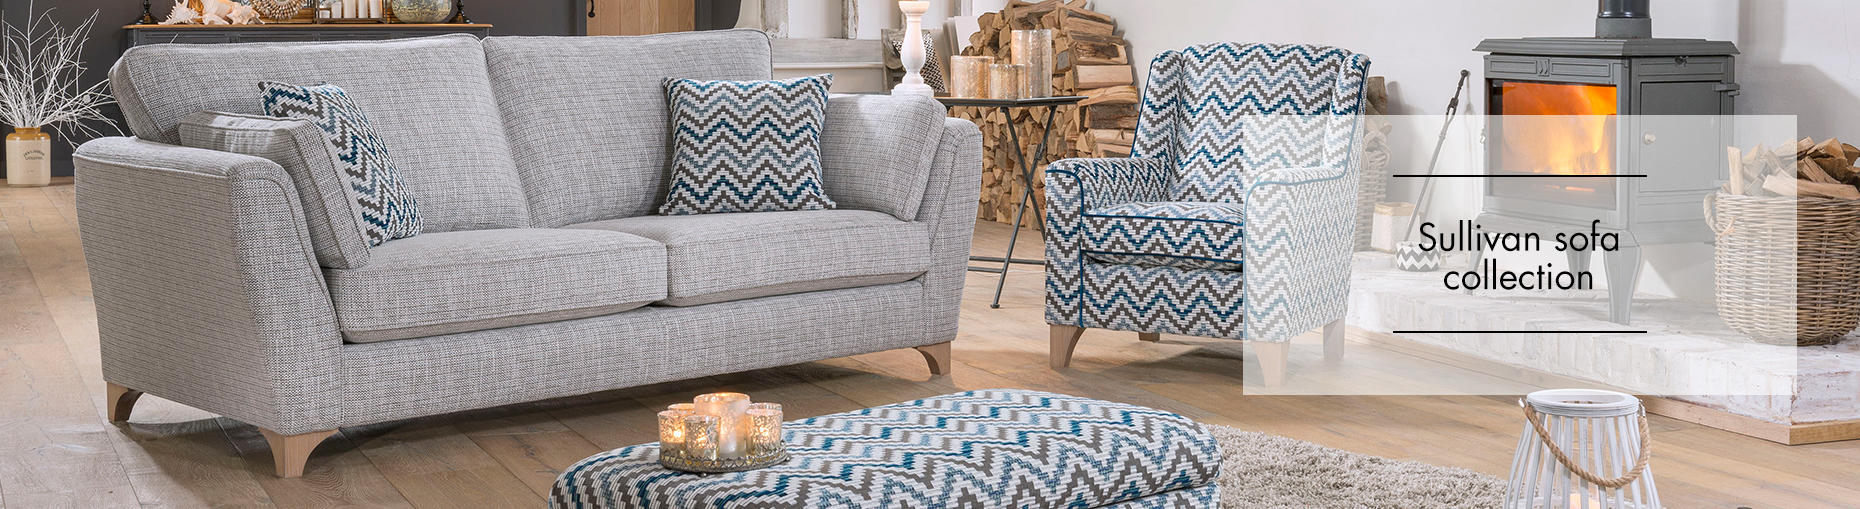 Alstons Sullivan Sofa Collection At Forrest Furnishing